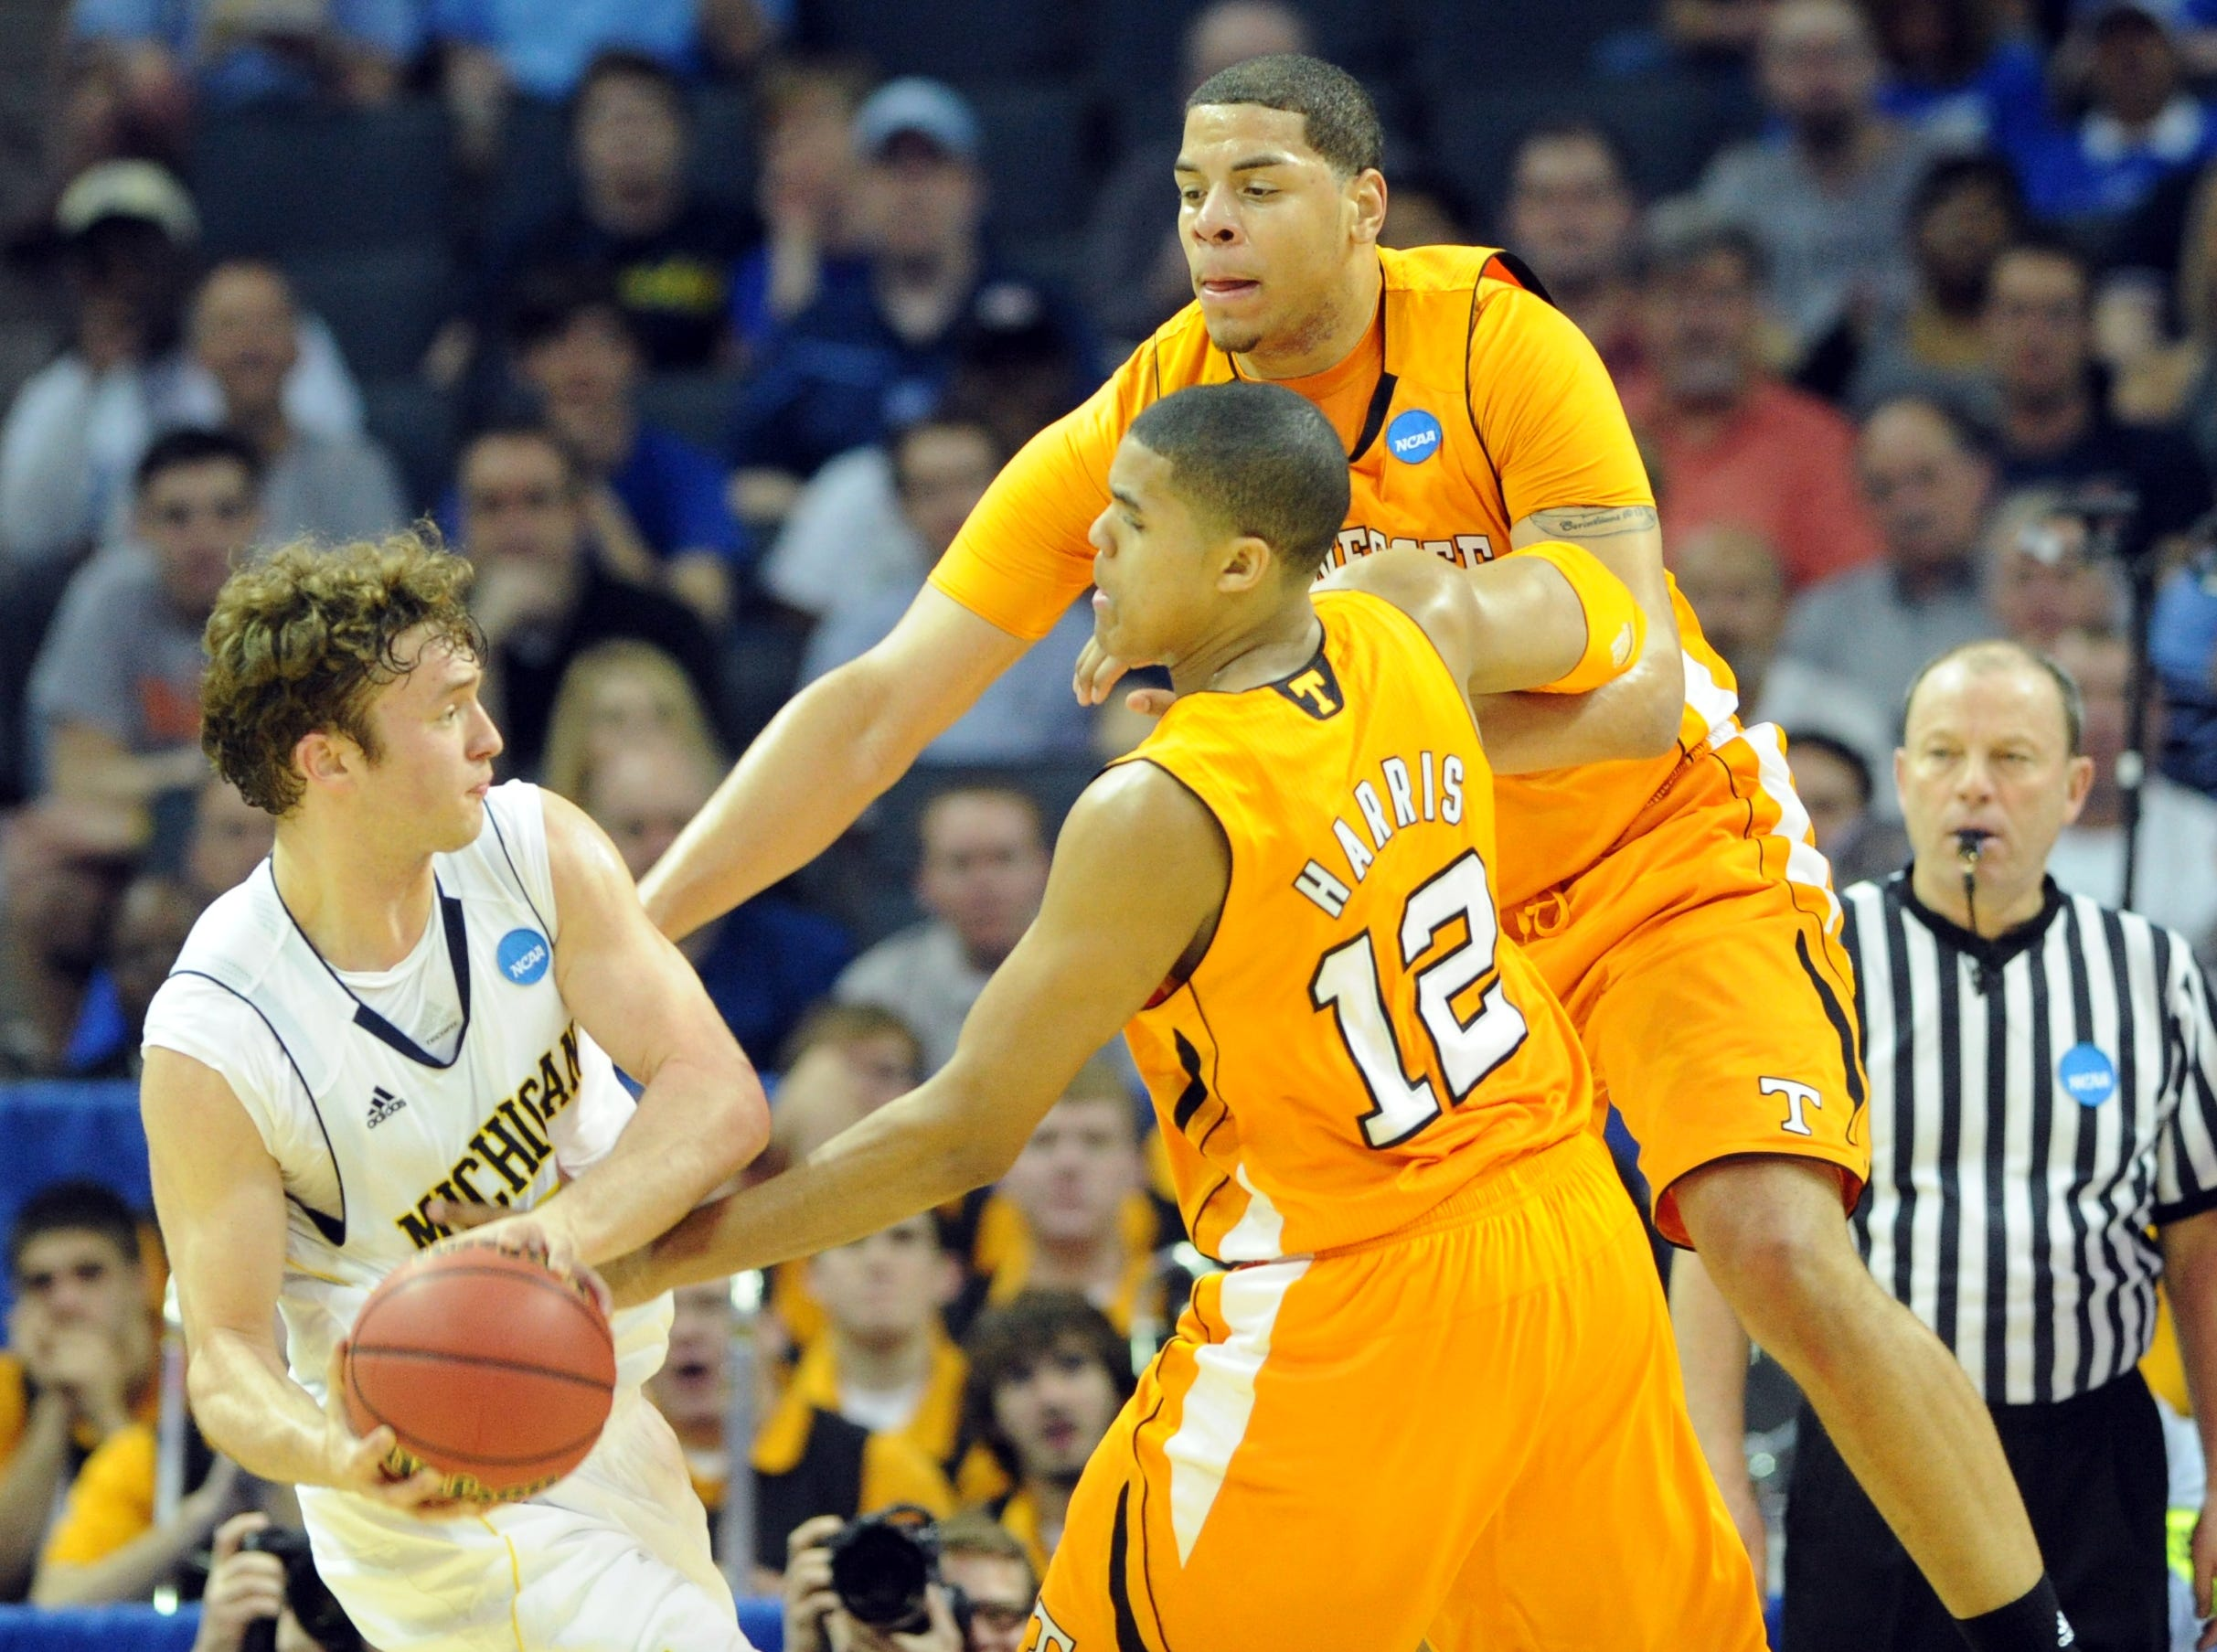 Tennessee forward Tobias Harris, center, and center Brian Williams, right, defend against Michigan forward Zack Novak as he looks for an open teammate during the second round of the NCAA Tournament at Time Warner Cable Arena in Charlotte, N.C. Friday, March 18, 2011.  Novak scored 14 points for the Wolverines during their 75-45 defeat of the Vols.